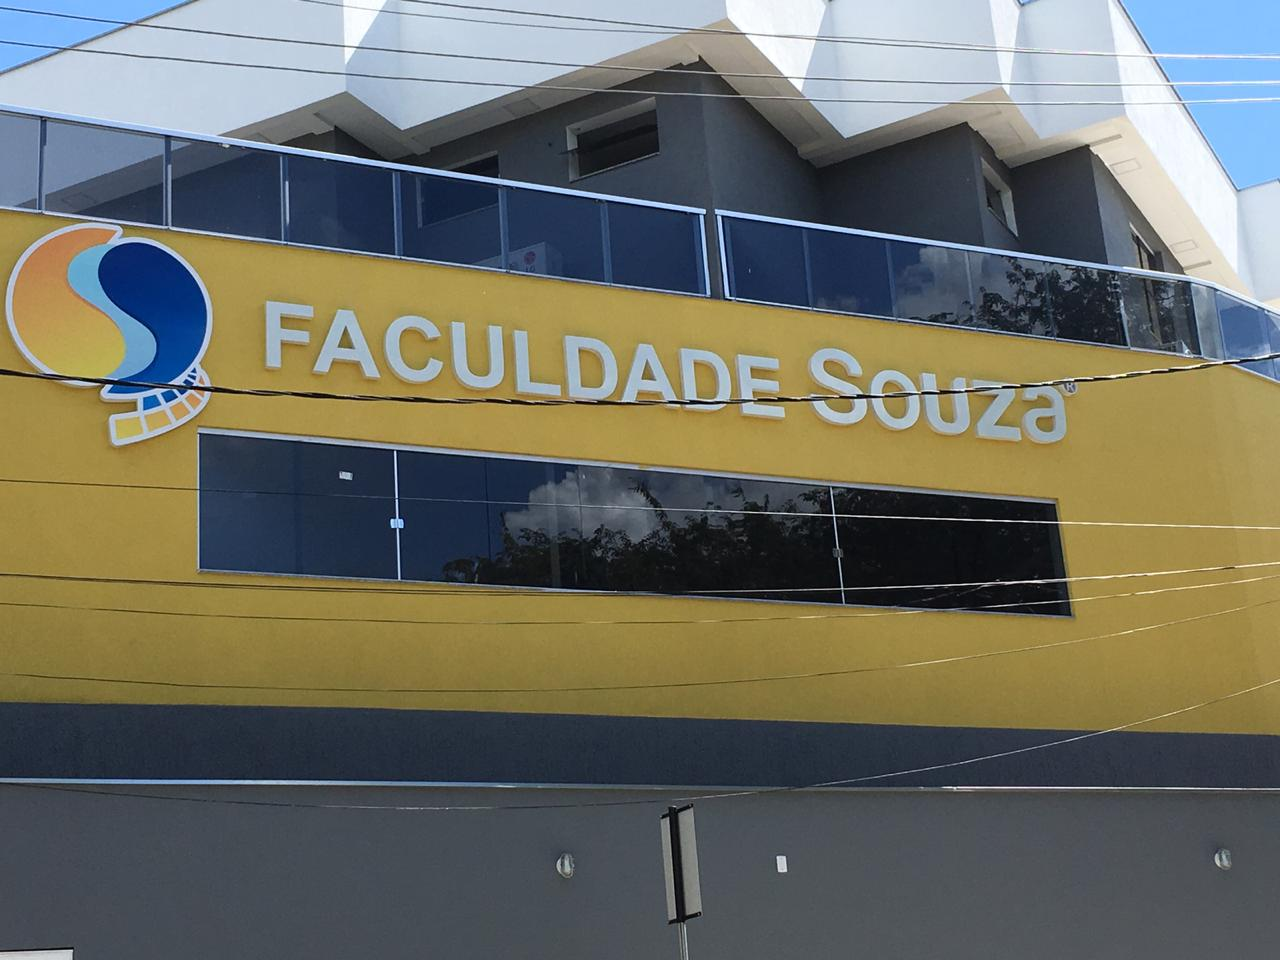 Foto04 - Sede do Instituto Souza e Faculdade Souza Ipatinga - MG